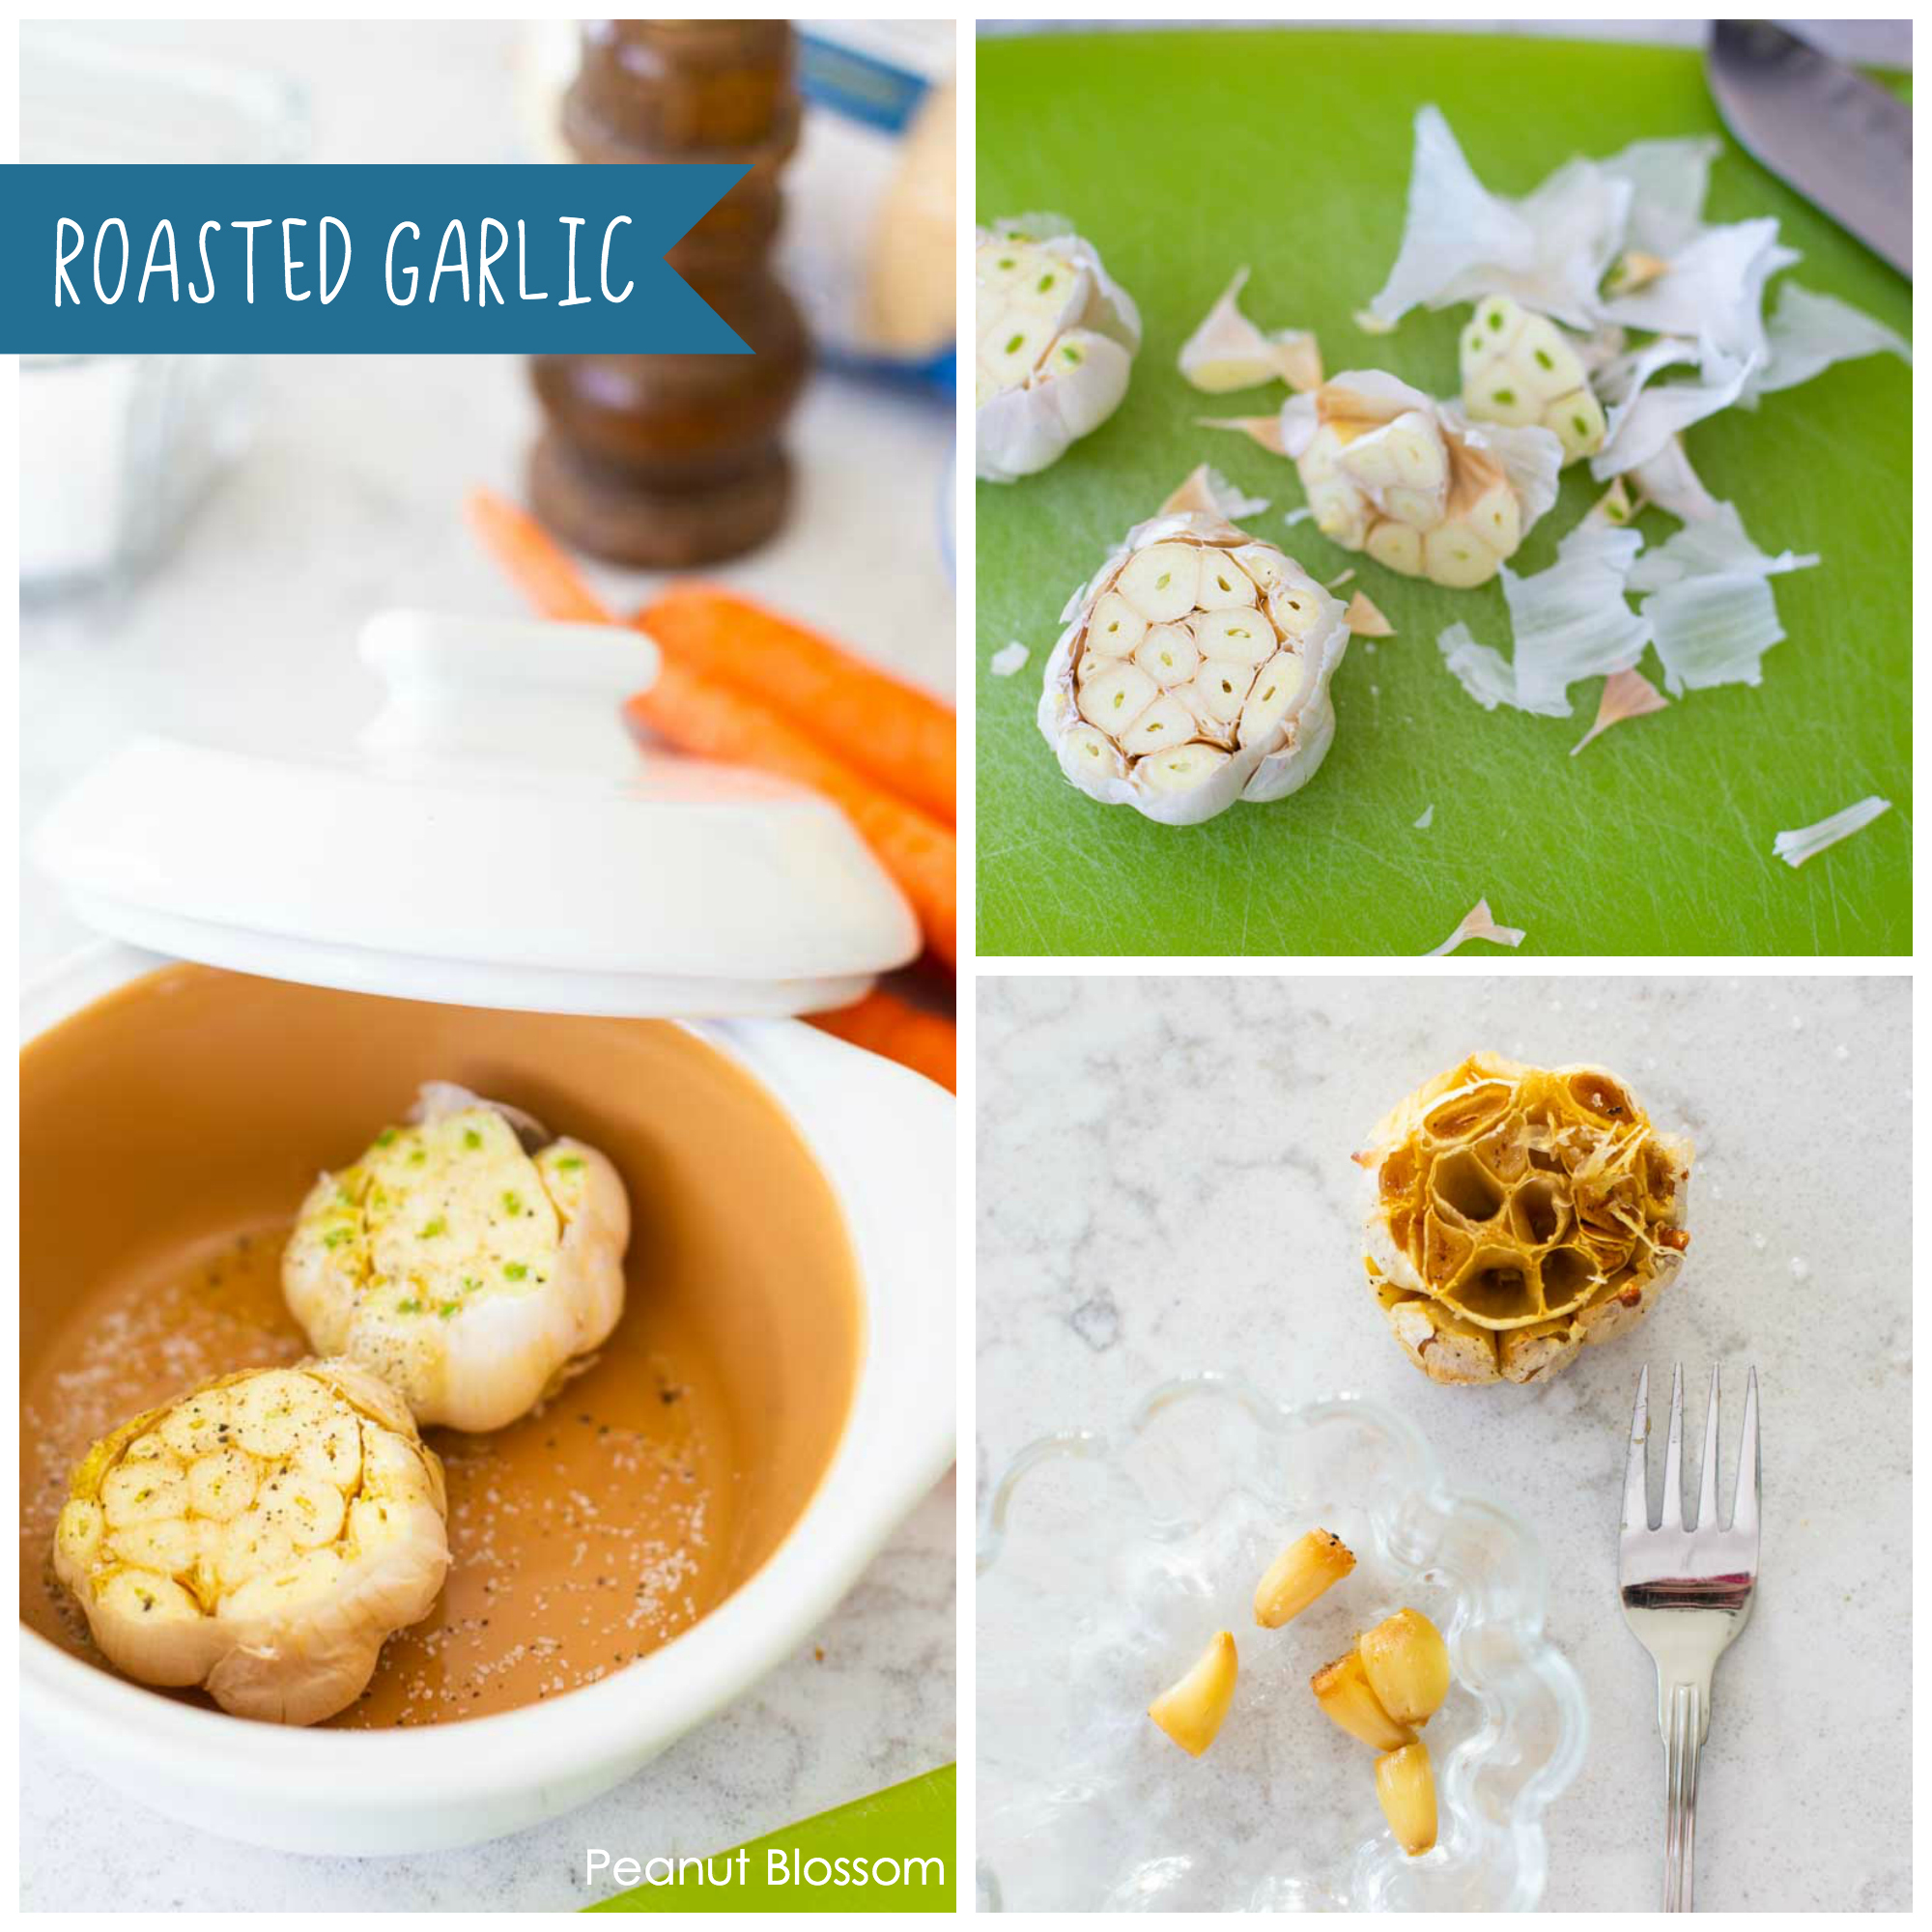 How to make roasted garlic for chicken soup: Cut the head off the garlic, drizzle with olive oil, bake at 375 degrees until toasted golden brown. Pluck the cloves out with a fork and smash.